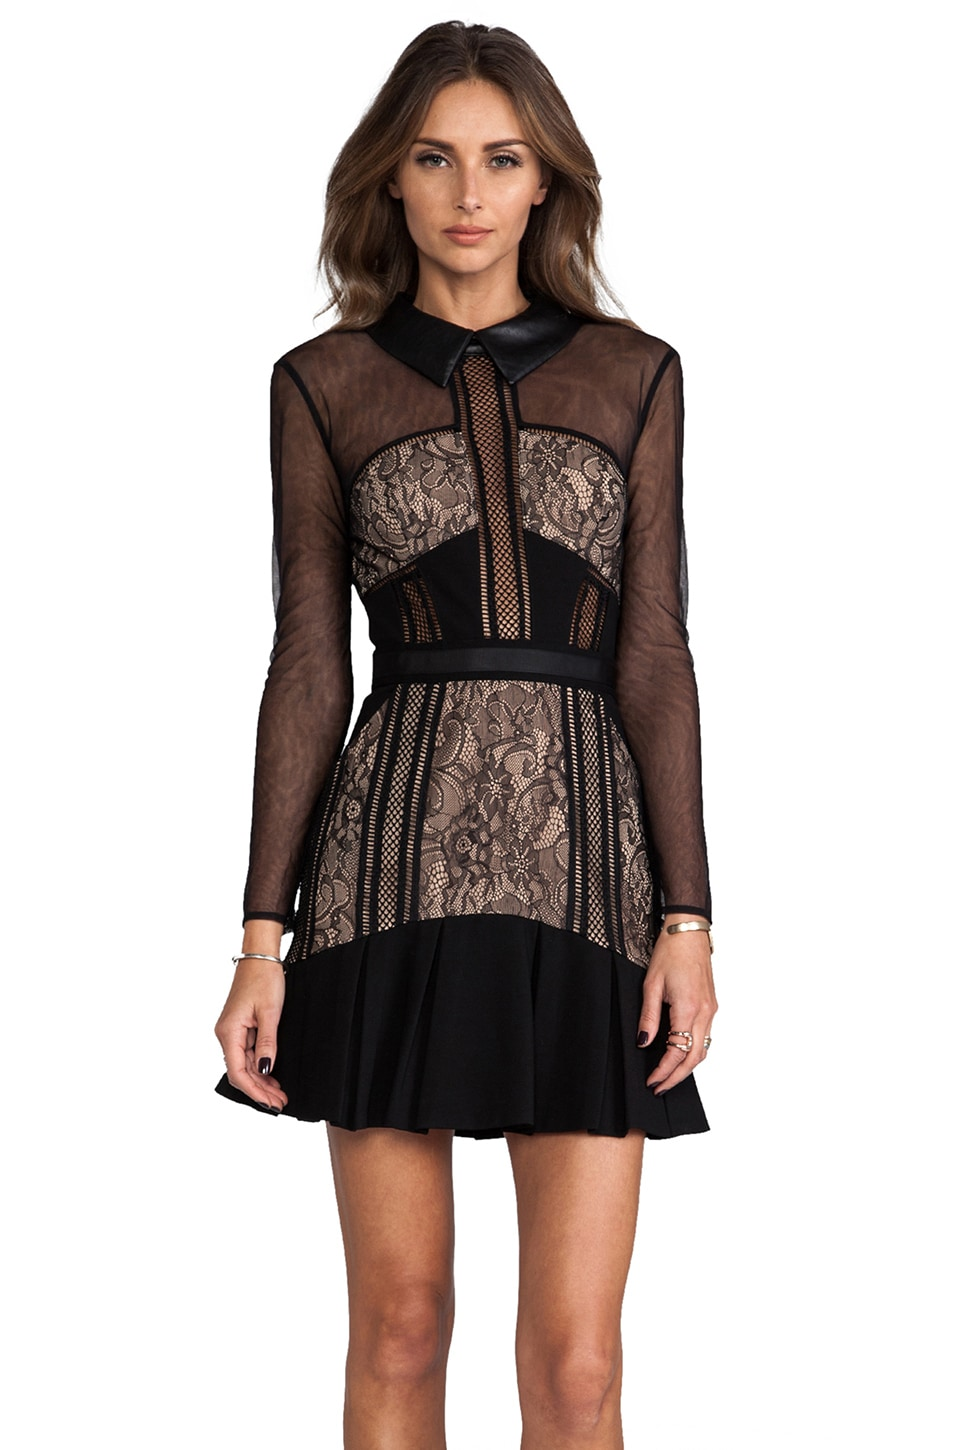 self-portrait Sheer Light Dress in Black/Nude